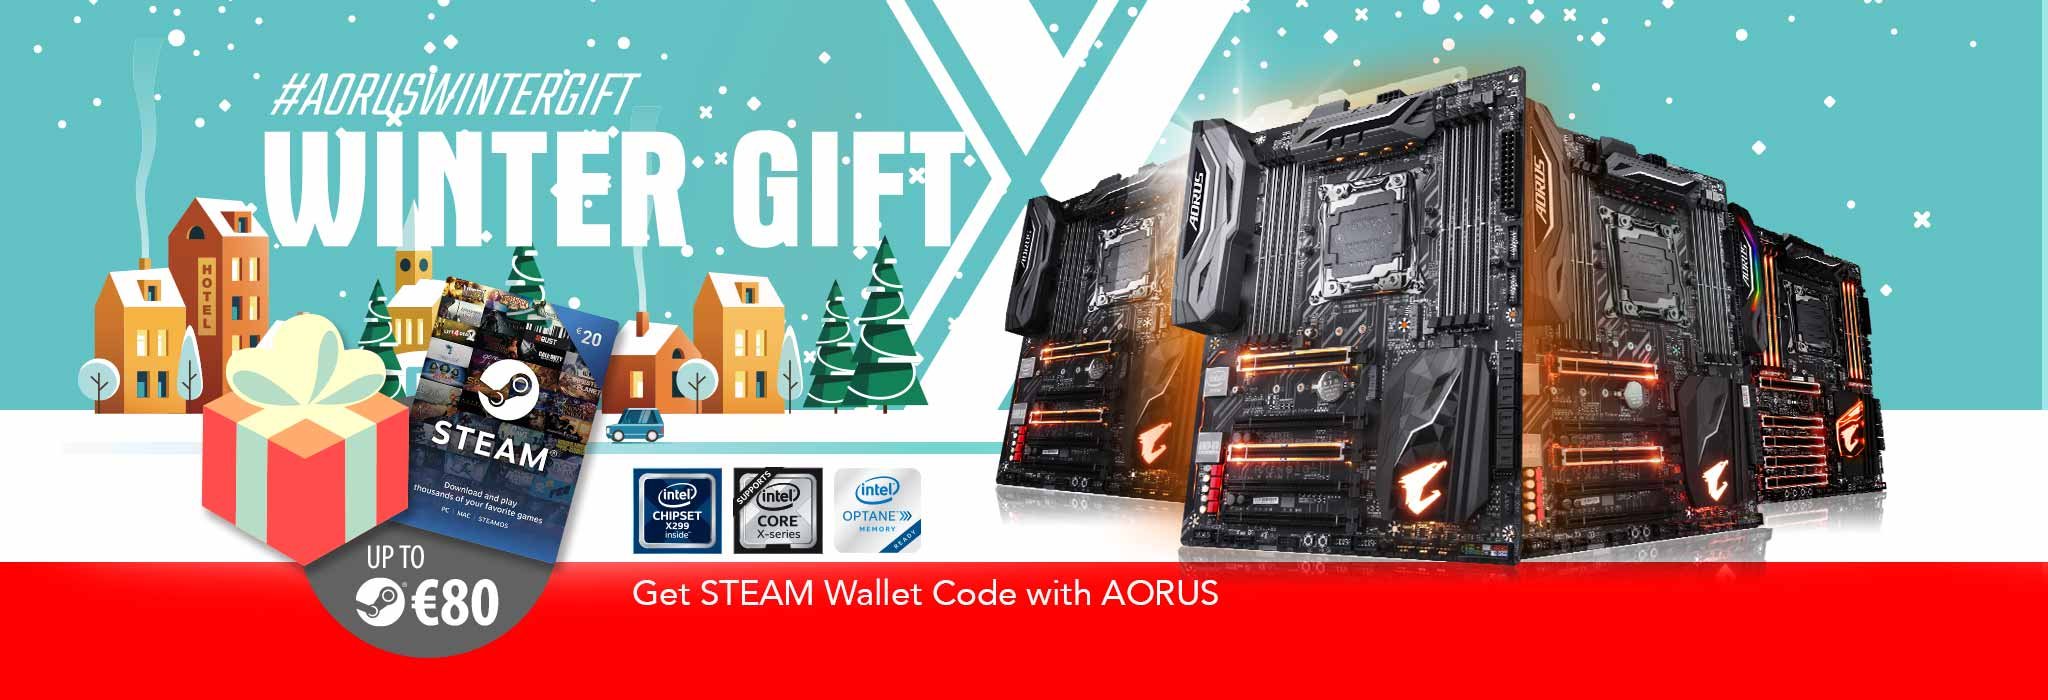 Buy the latest GIGABYTE AORUS X299 motherboards get up to